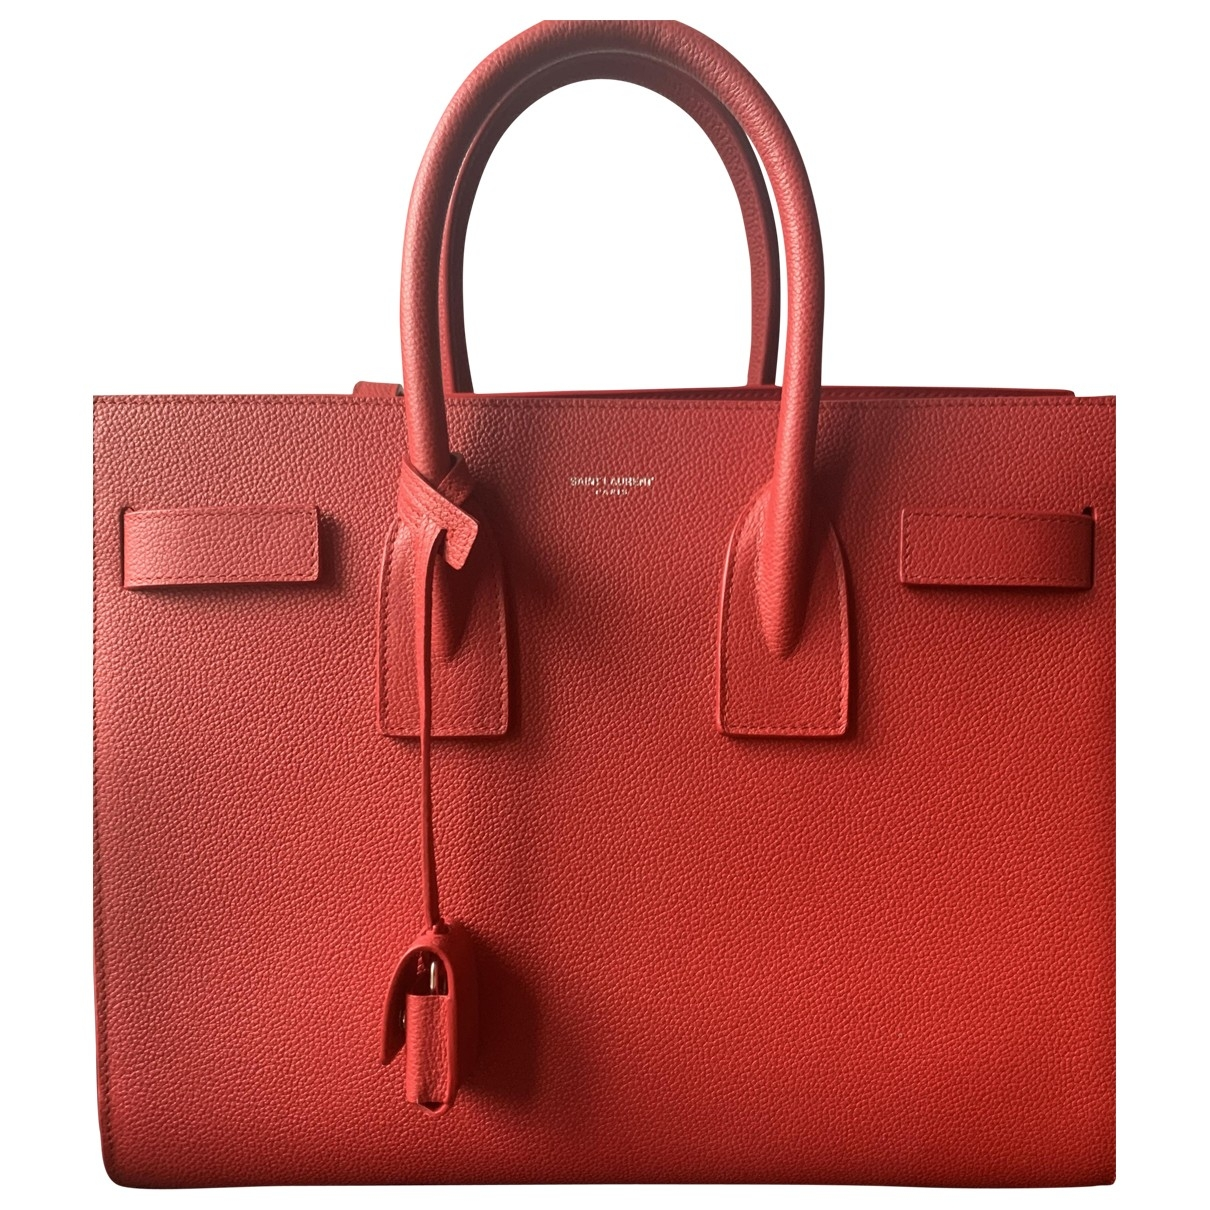 Saint Laurent Sac de Jour Handtasche in  Rot Leder